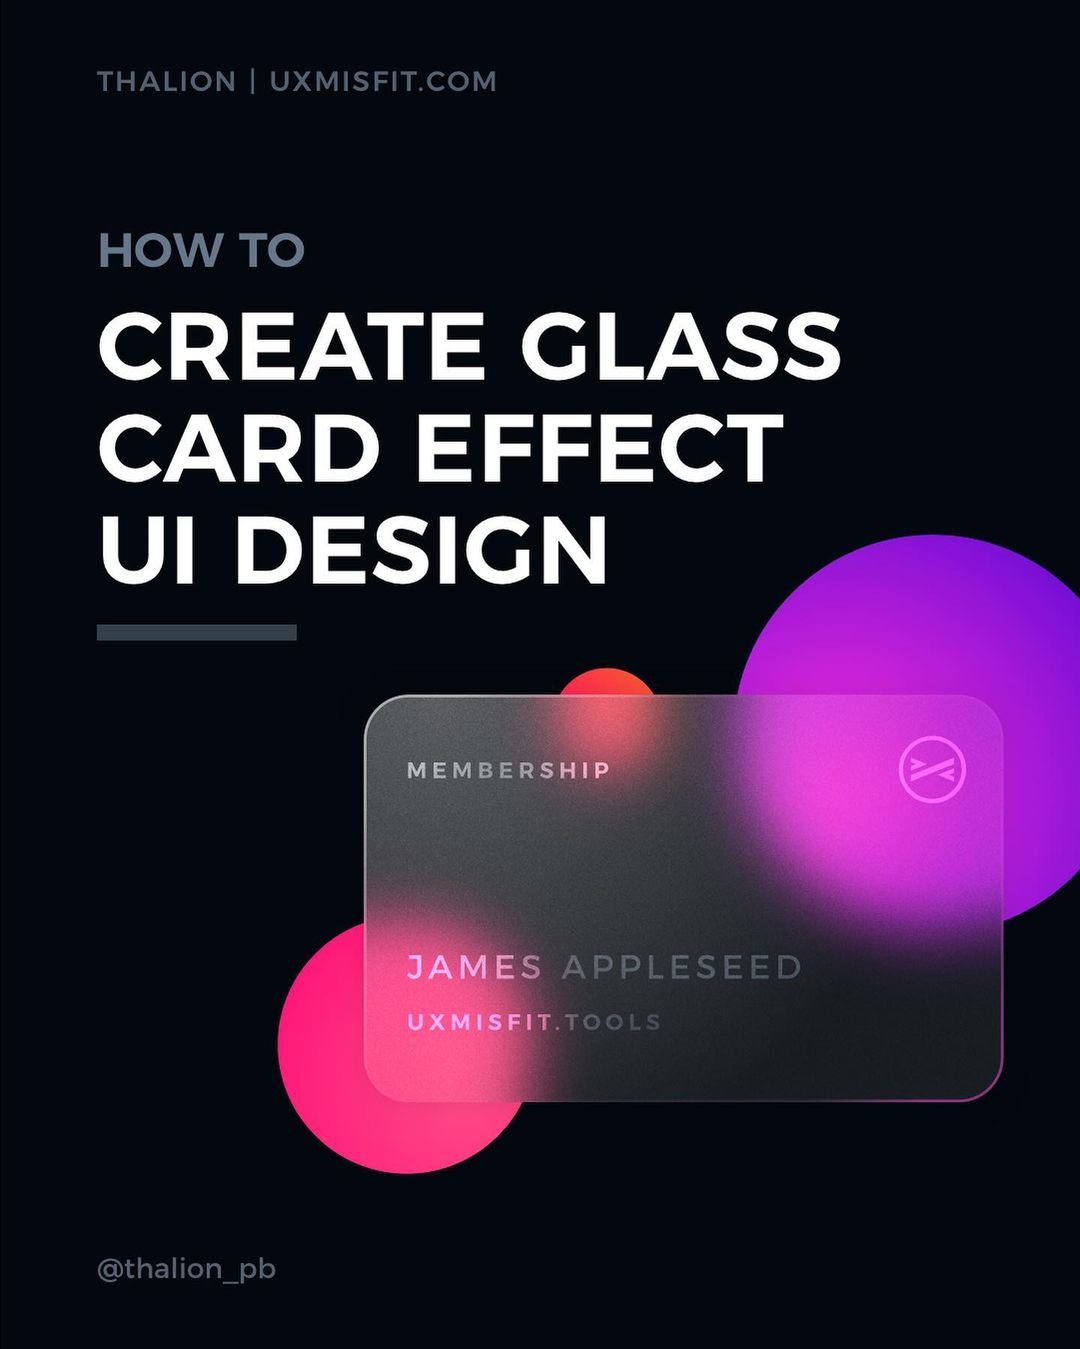 How To Create A Stunning Glass Effect For Your UI Designs